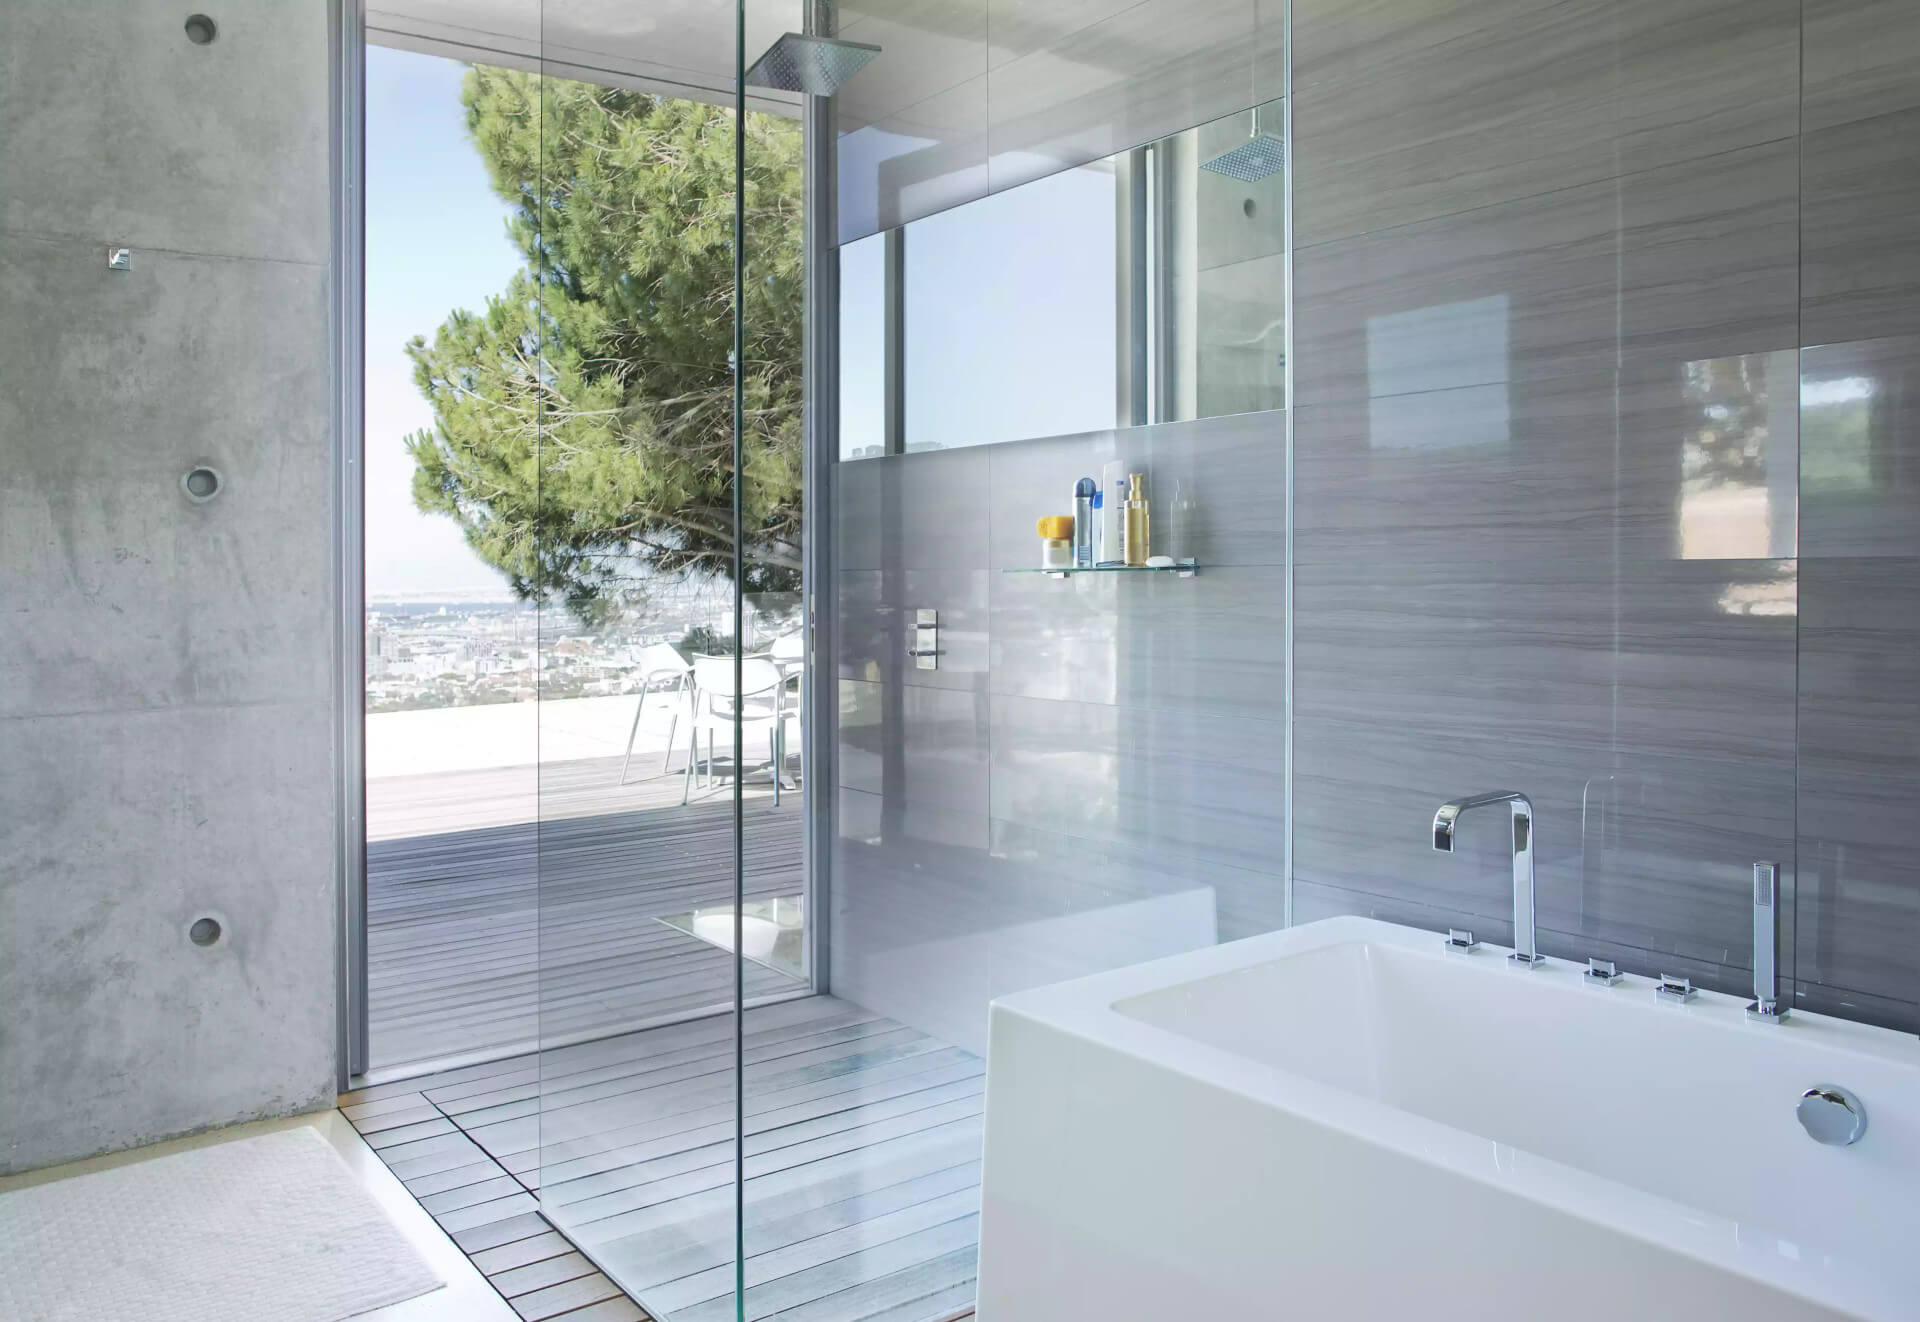 How to choose the best bathroom flooring in Montreal, Quebec, Canada?